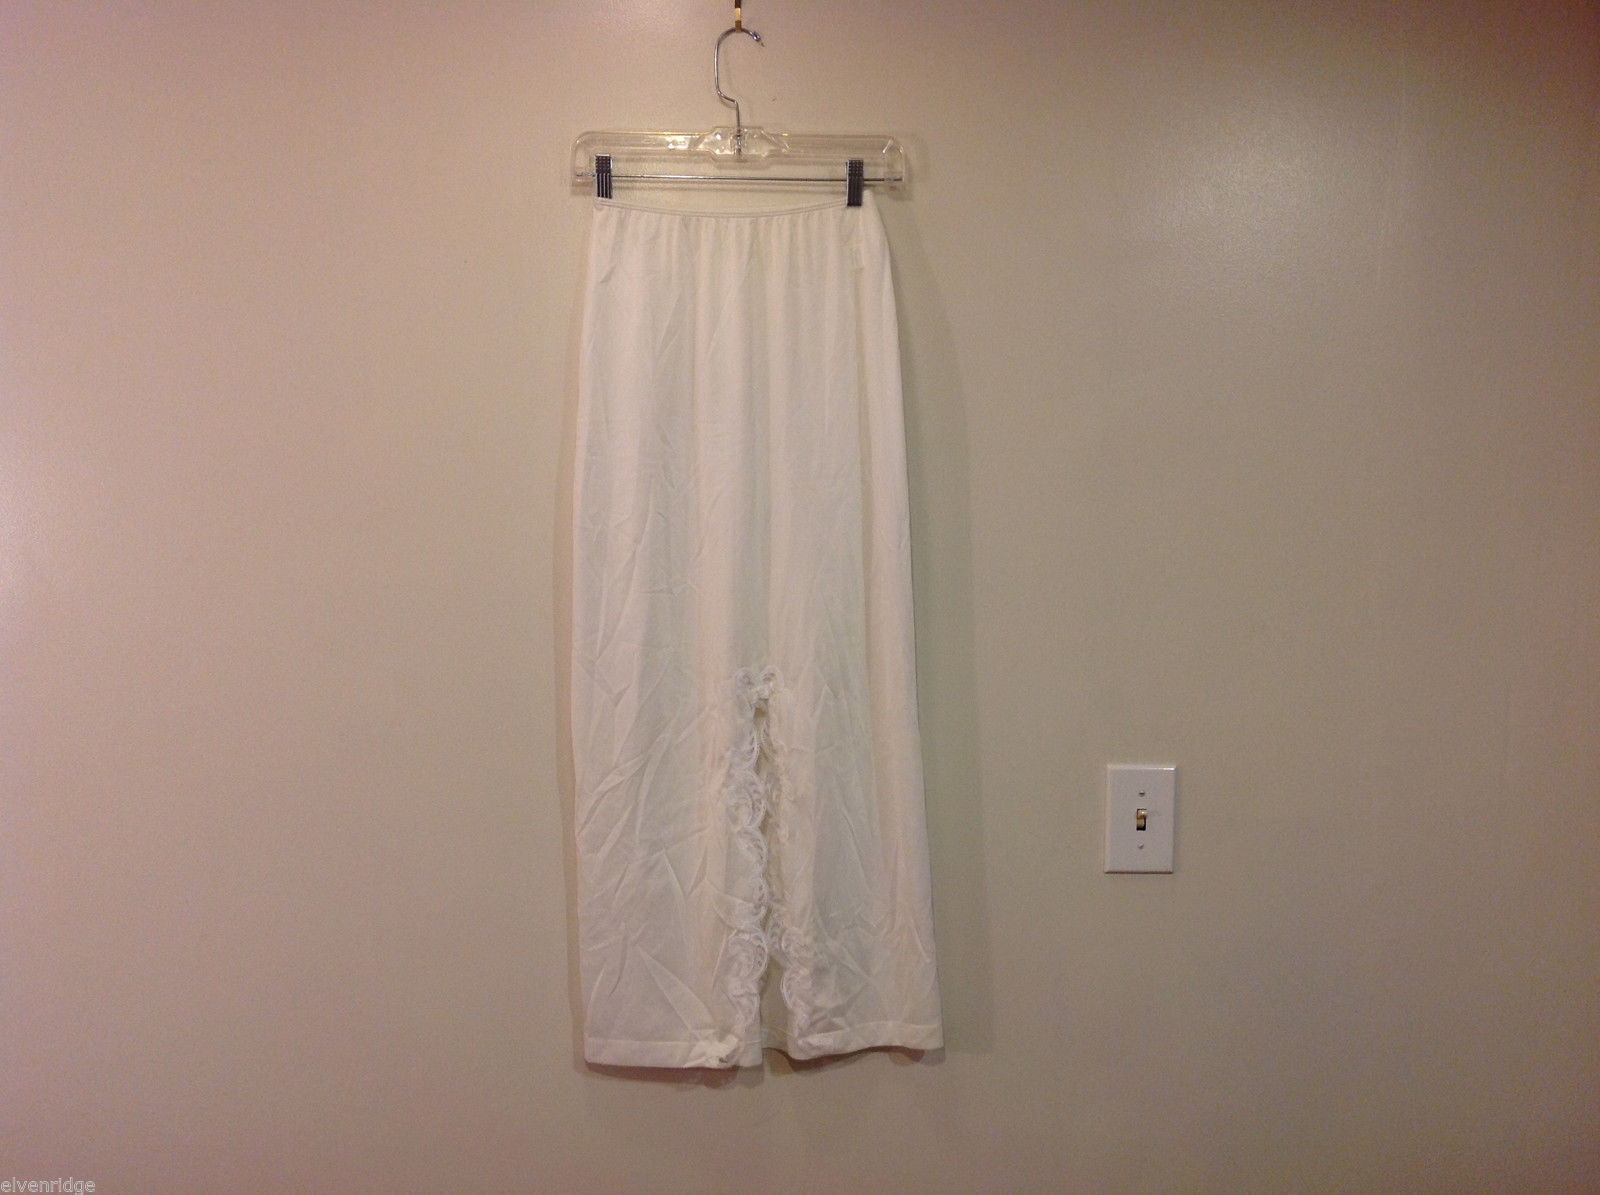 White with Lace Formal Length Underskirt 100% nylon, Size Small, by Sears